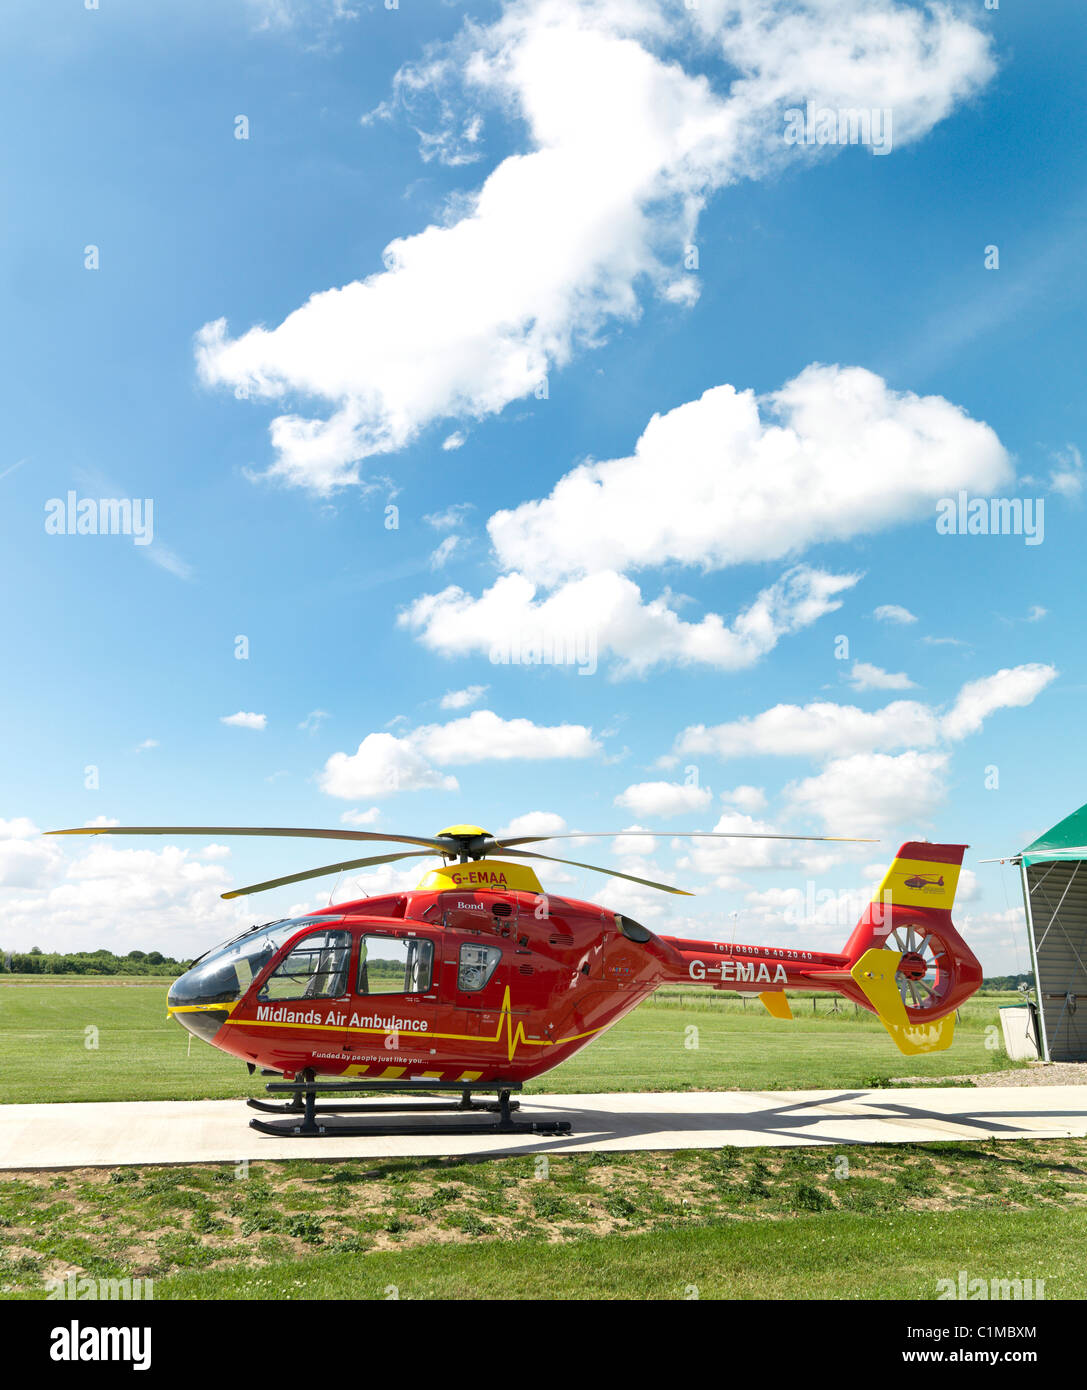 Air Ambulance RED - Stock Image